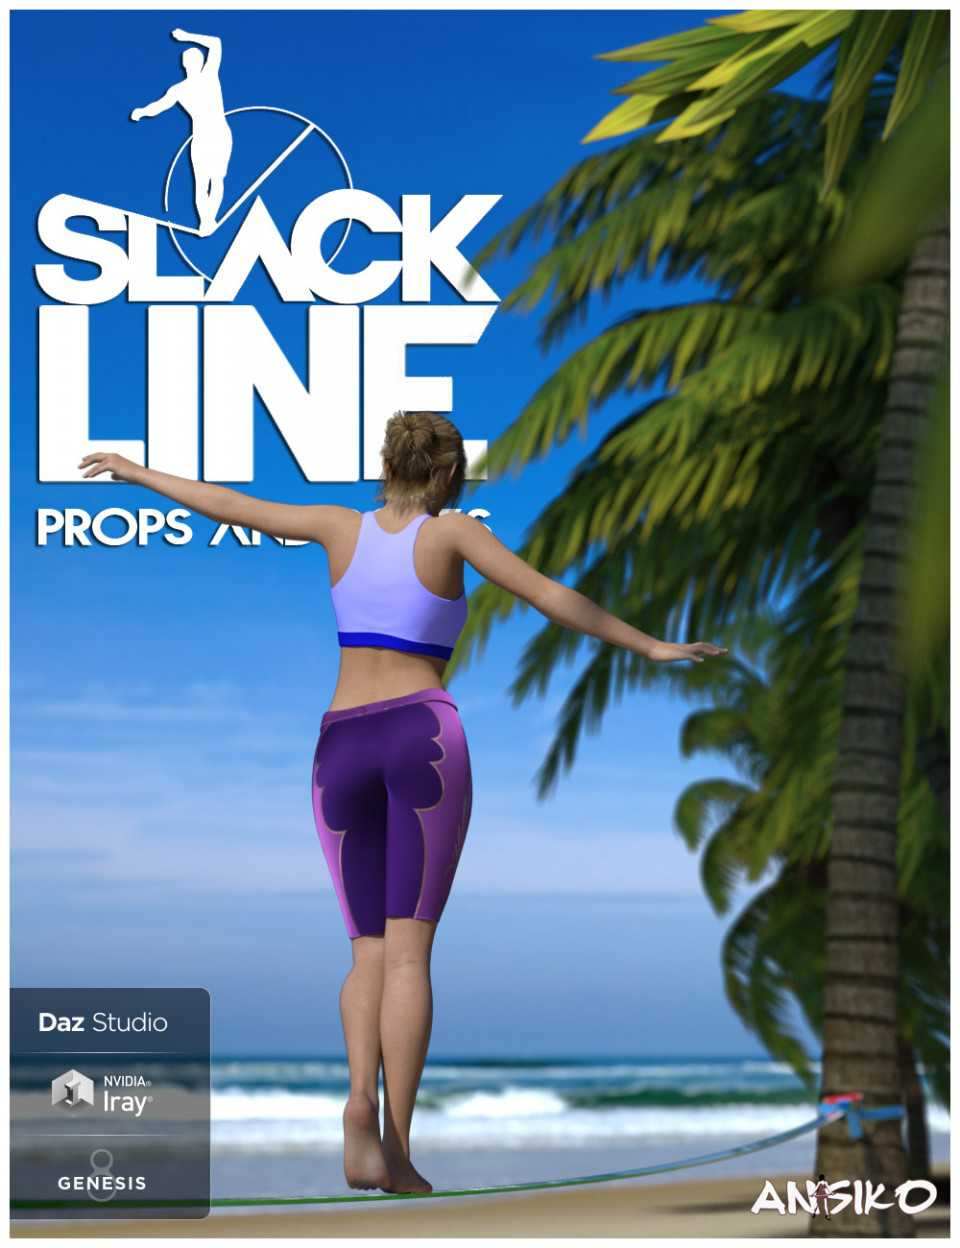 Slackline and Poses for Genesis 8